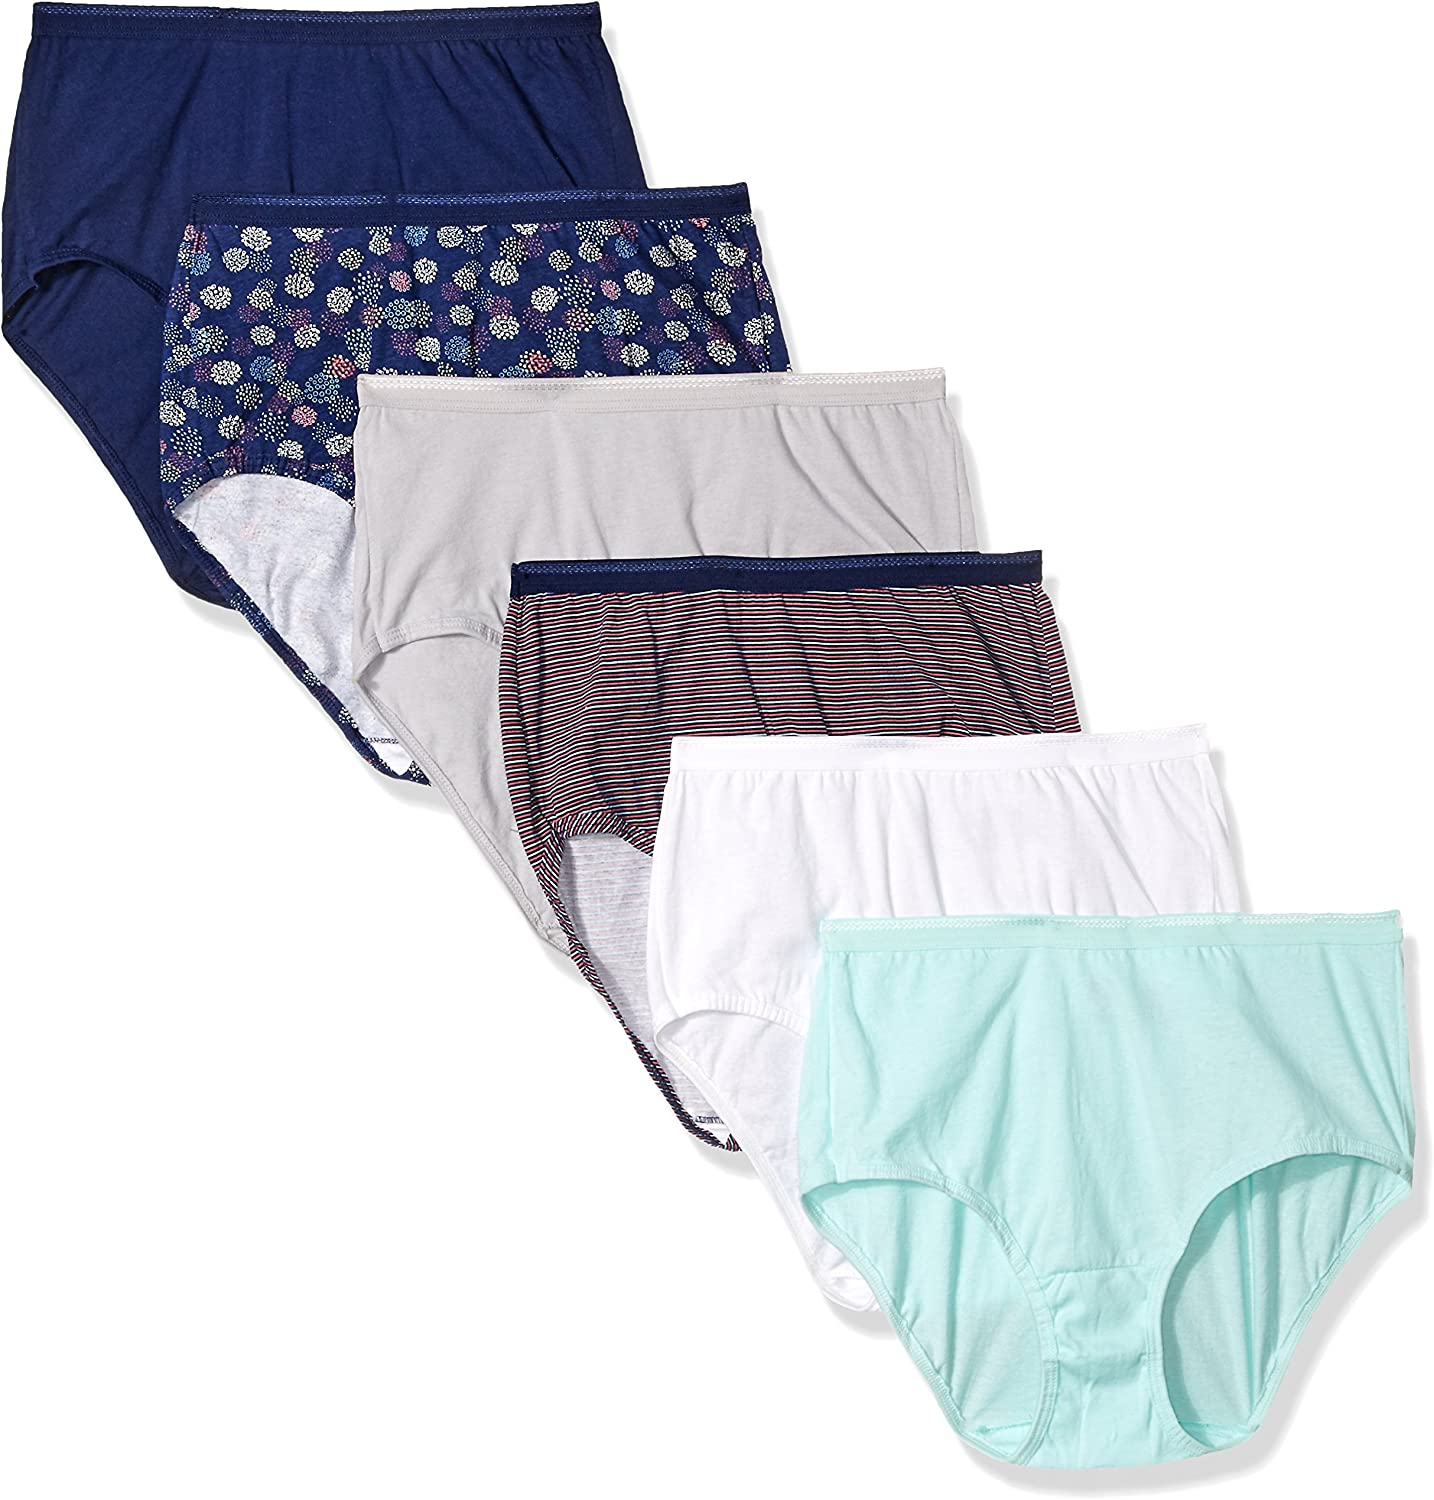 4 Pack High Leg Panty by George Size 10